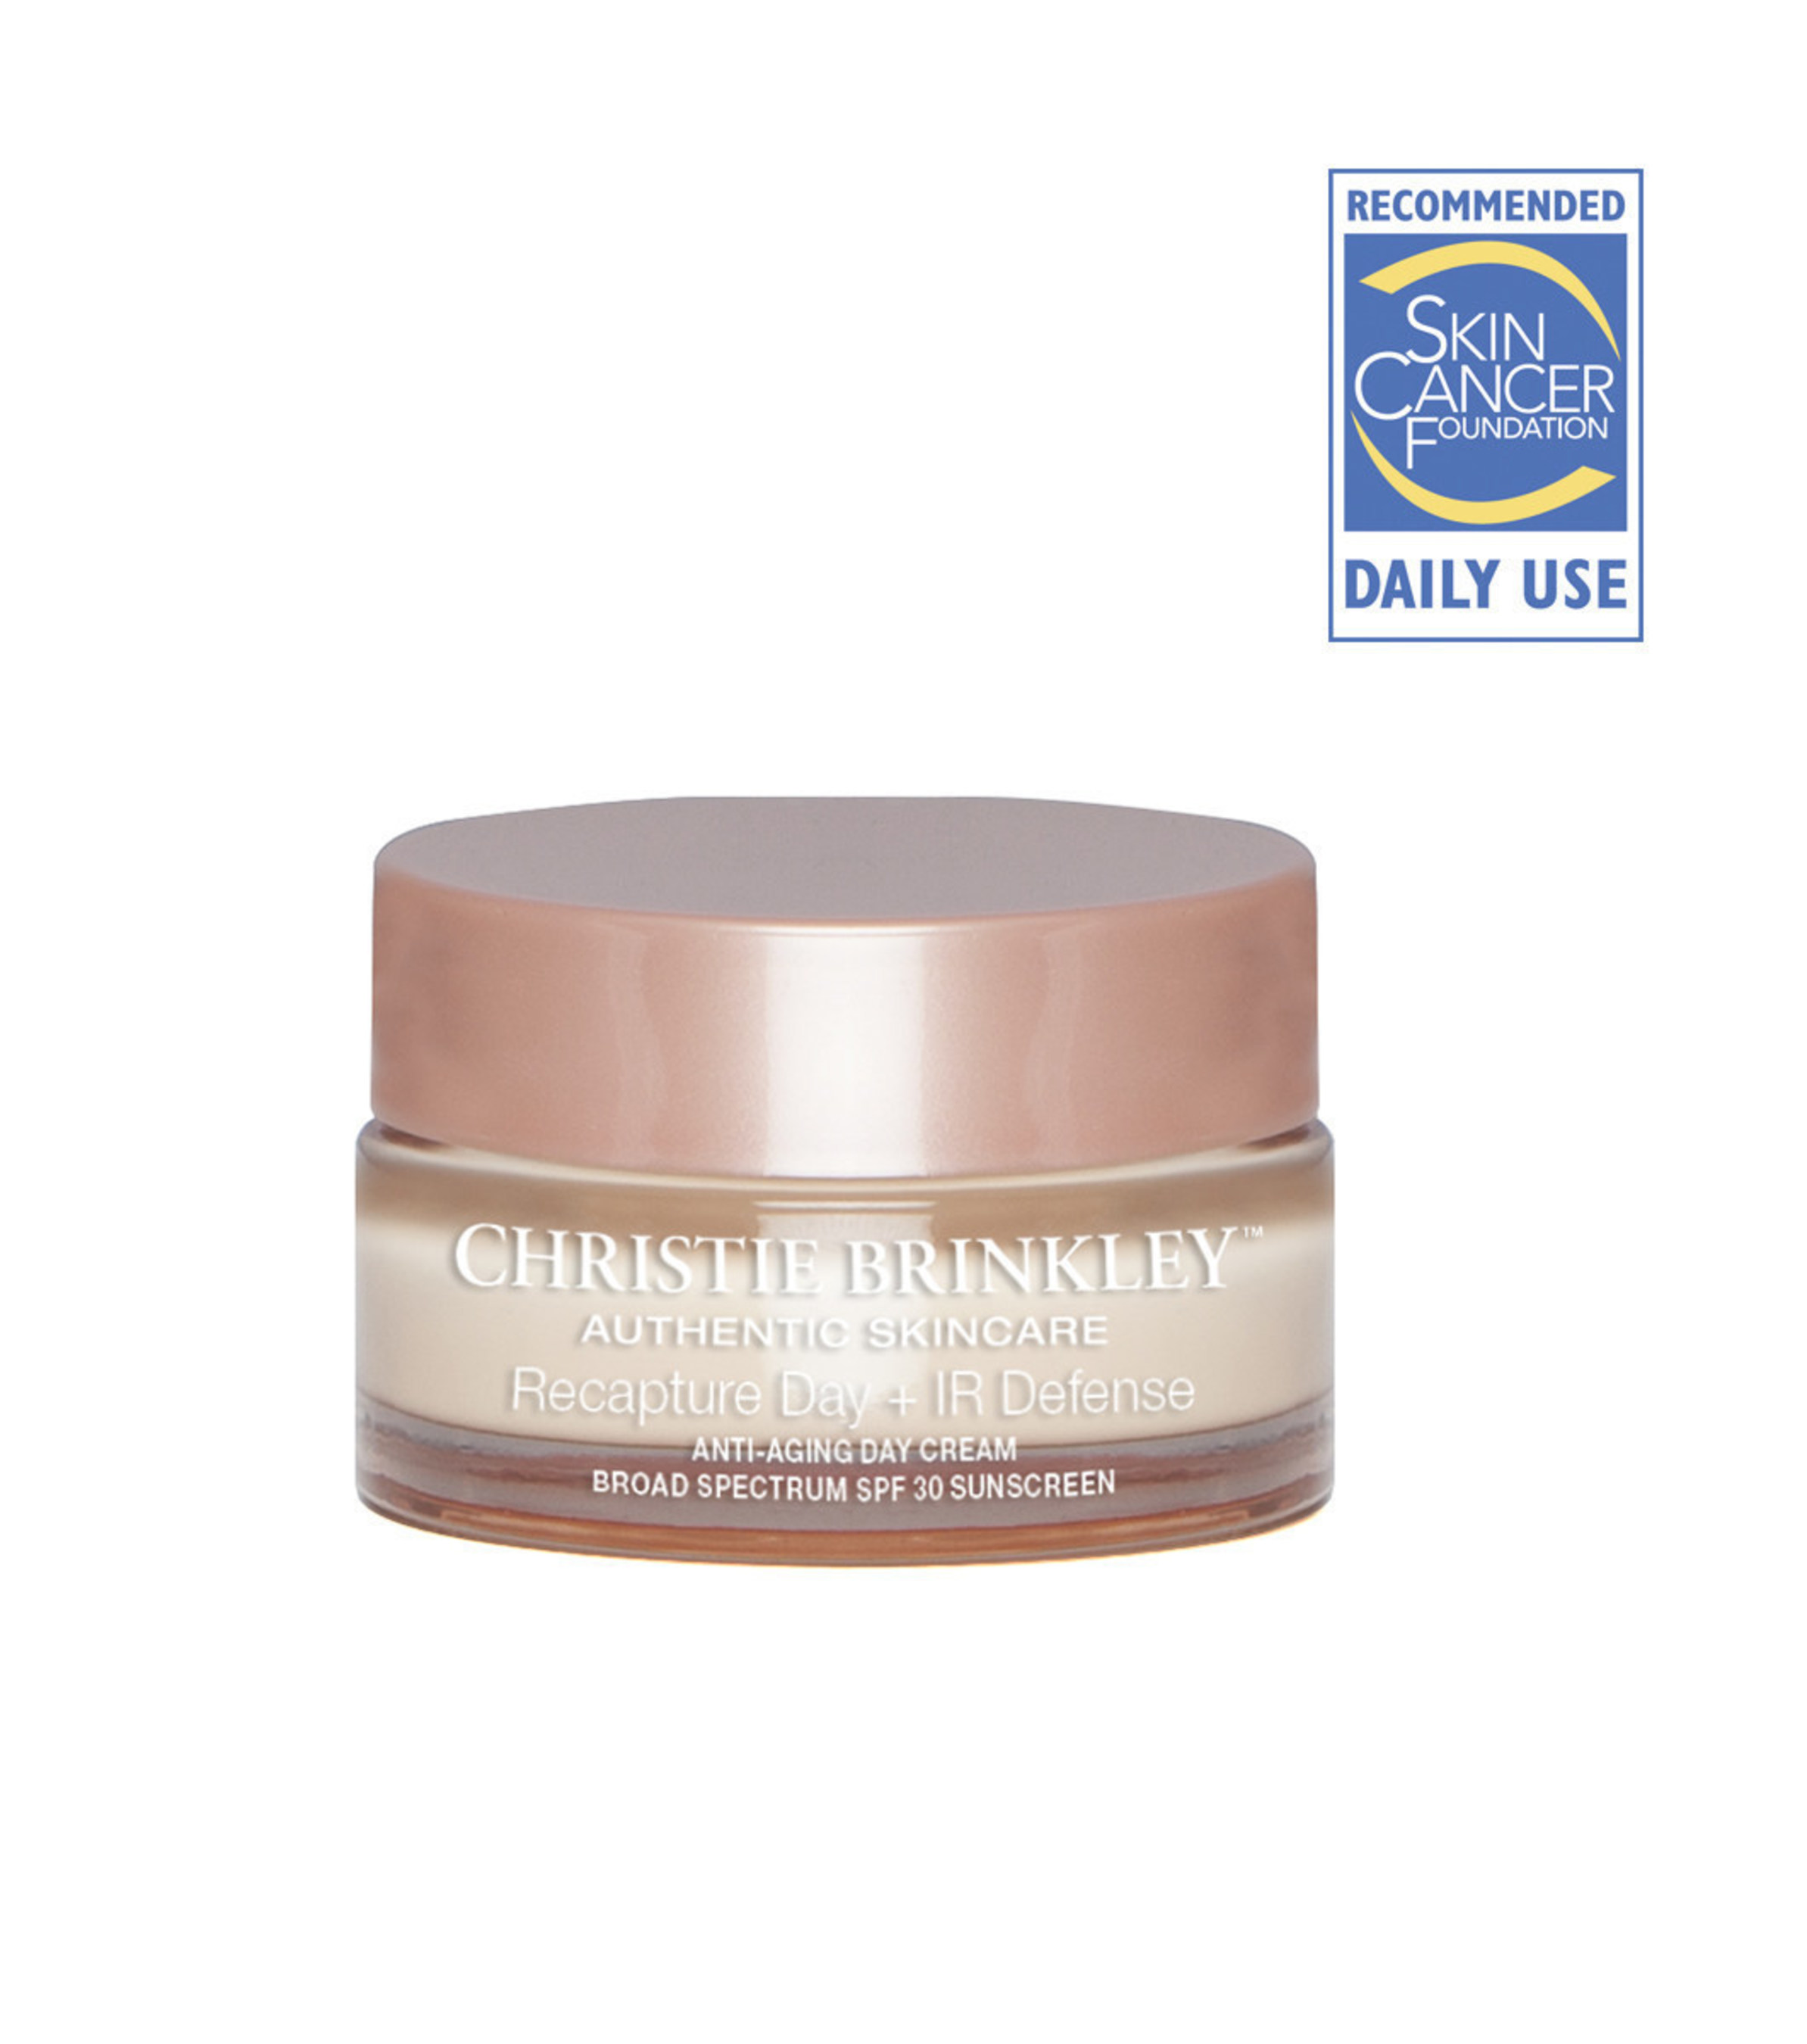 Christie Brinkley Authentic Skincare Line Receives The Skin Cancer